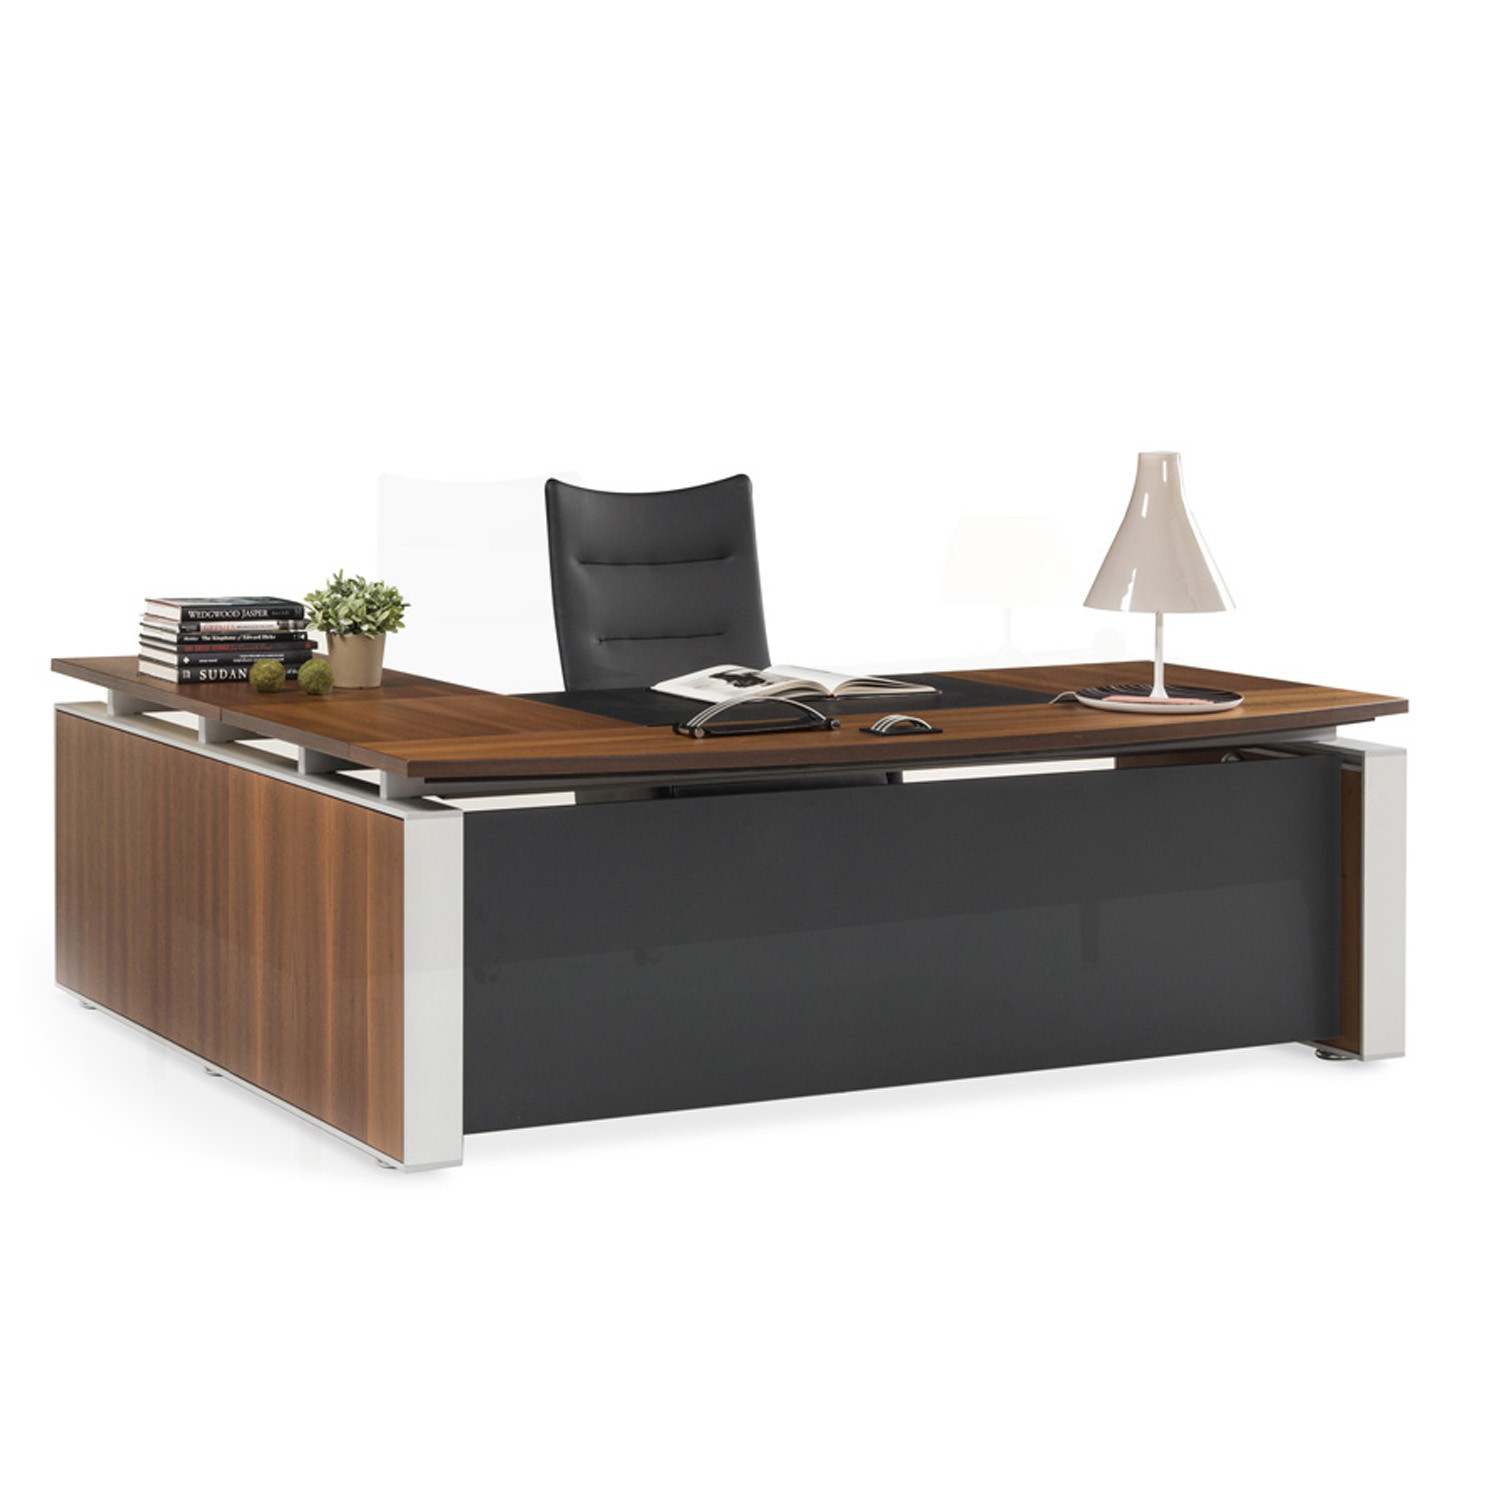 Swami Wooden Office Desk